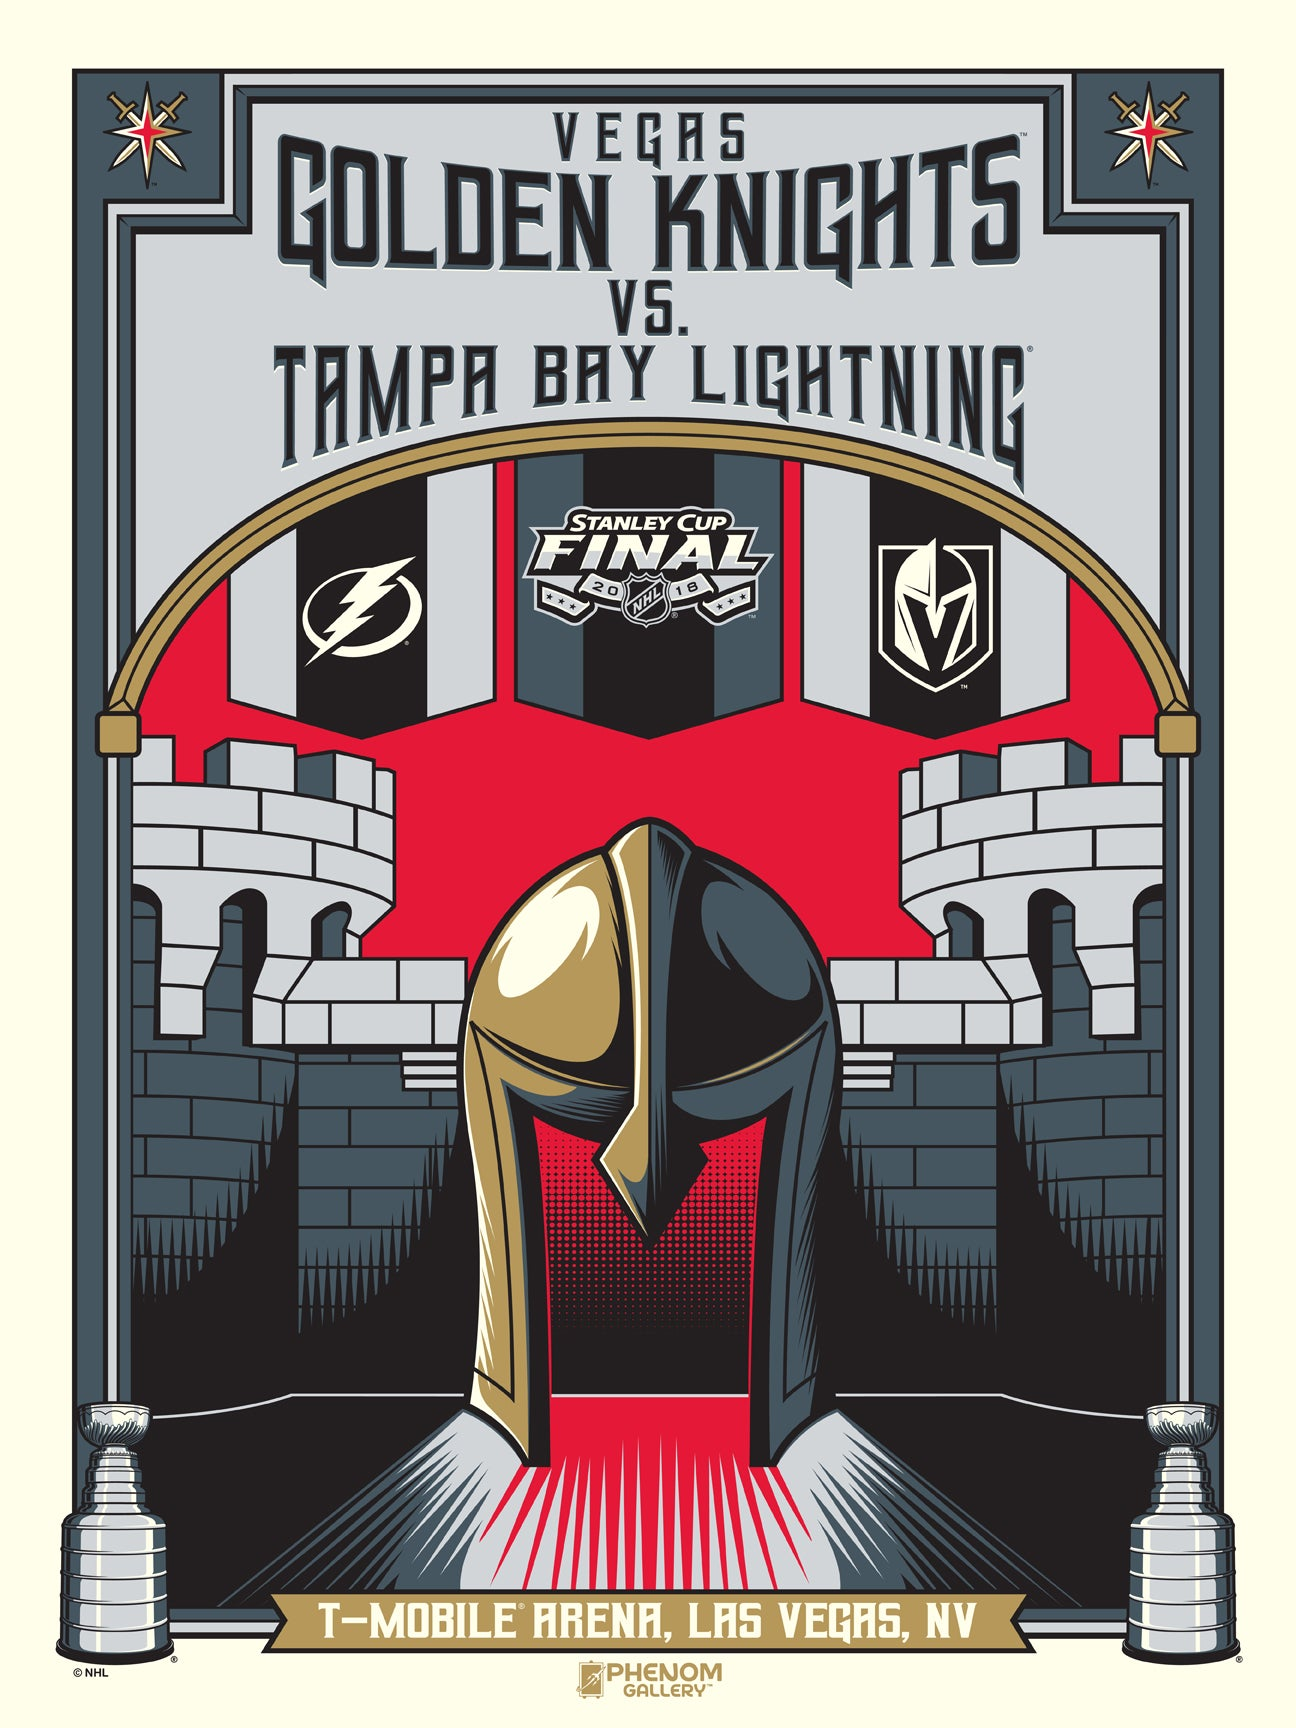 Vegas Golden Knights 2018 Stanley Cup Finals Serigraph (Printer Proof)